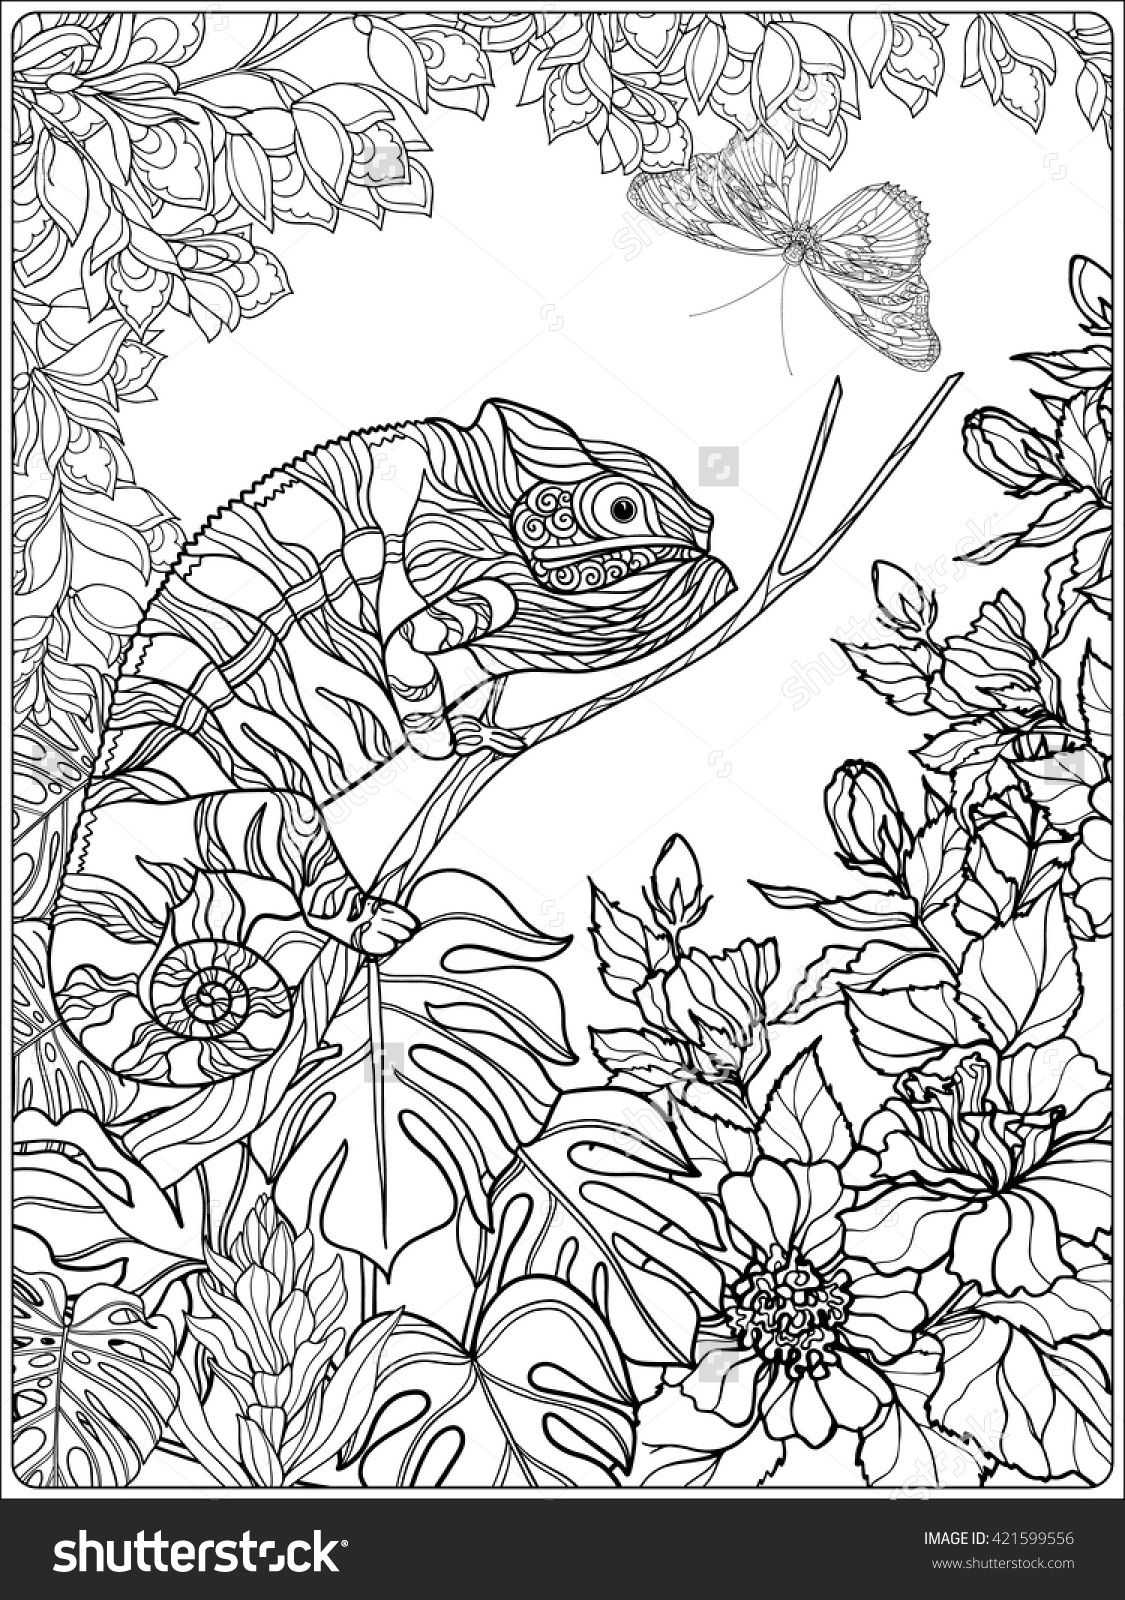 Tropical coloring book pages ~ tropical wildlife and plants coloring page Shutterstock ...